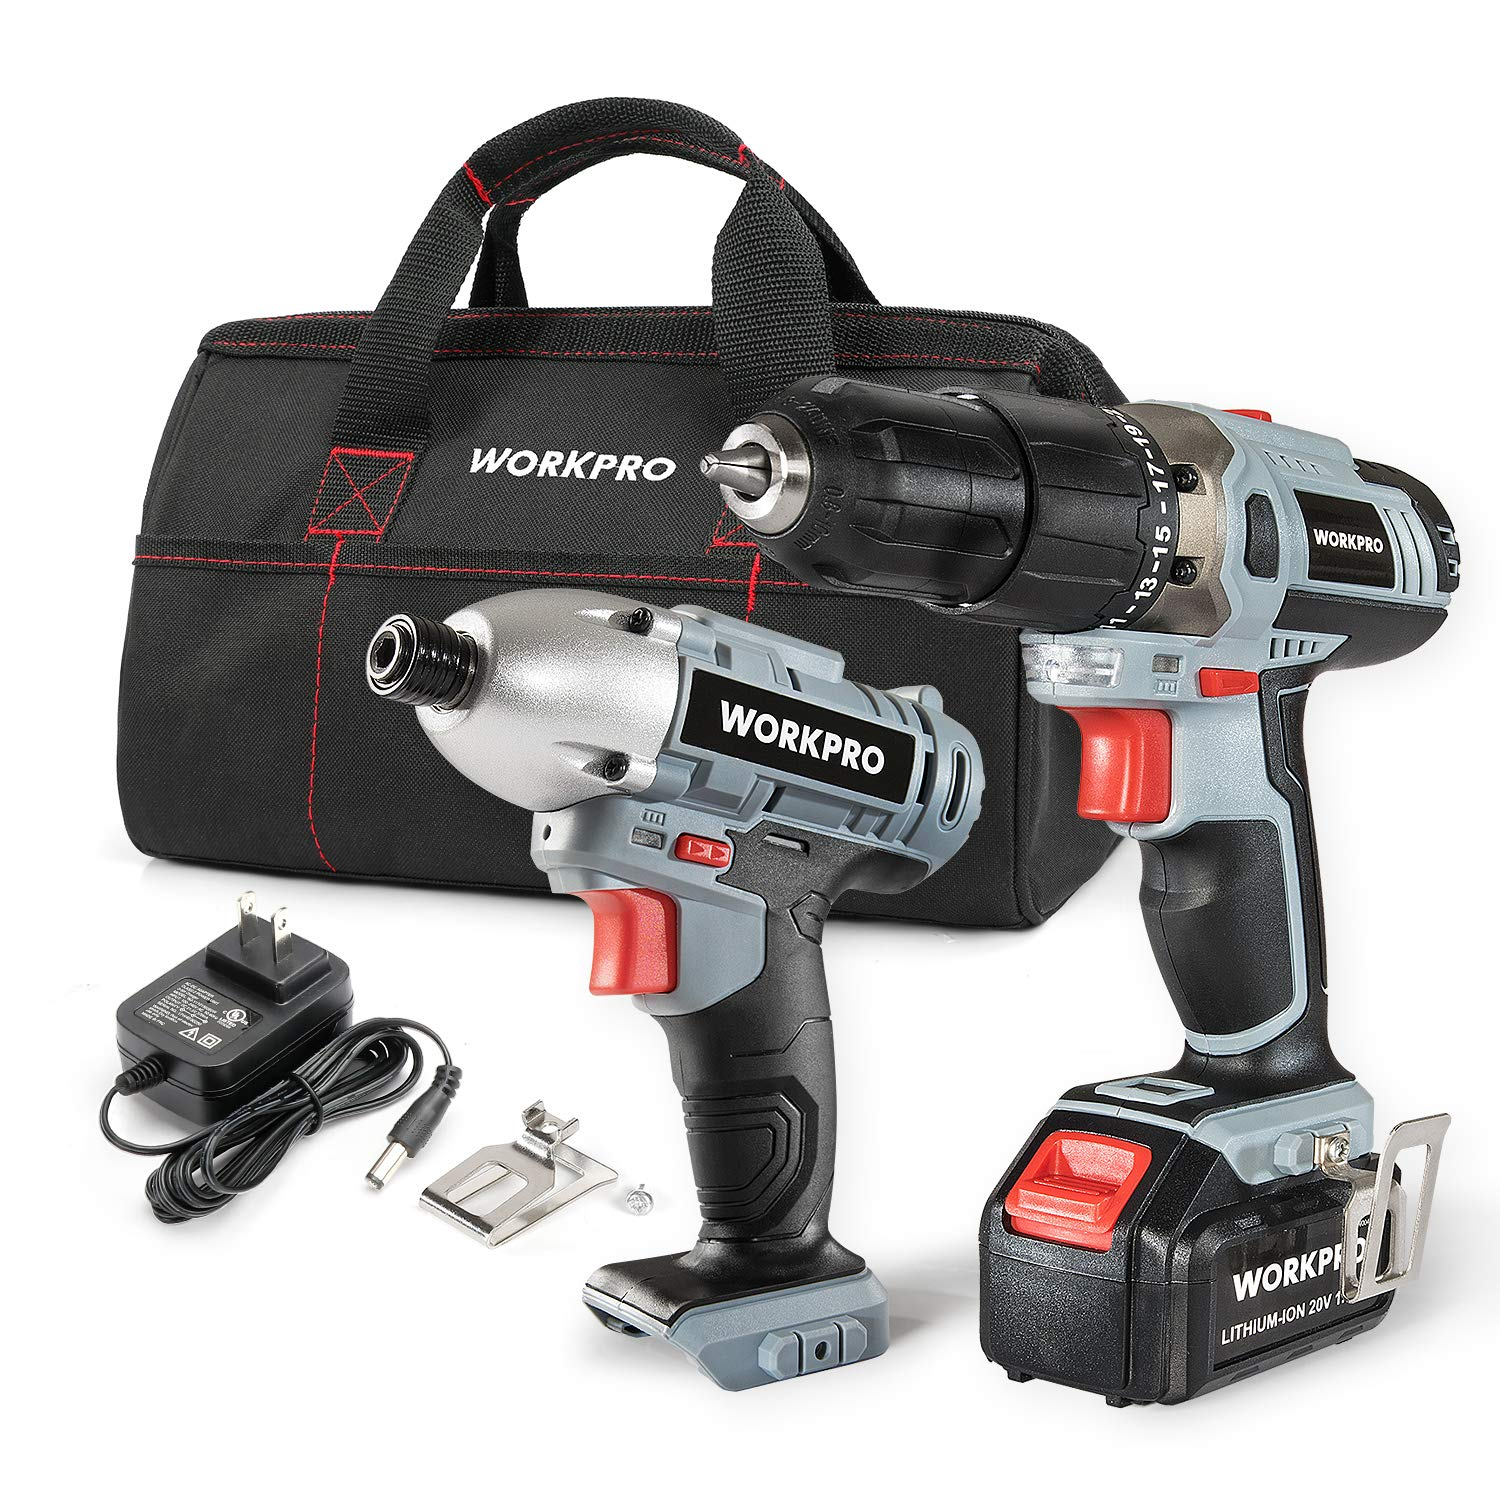 WORKPRO Cordless Drill Driver/Impact 20V Lithium Combo Kit(1 5Ah),1  Battery,Charger and Storage Bag Included